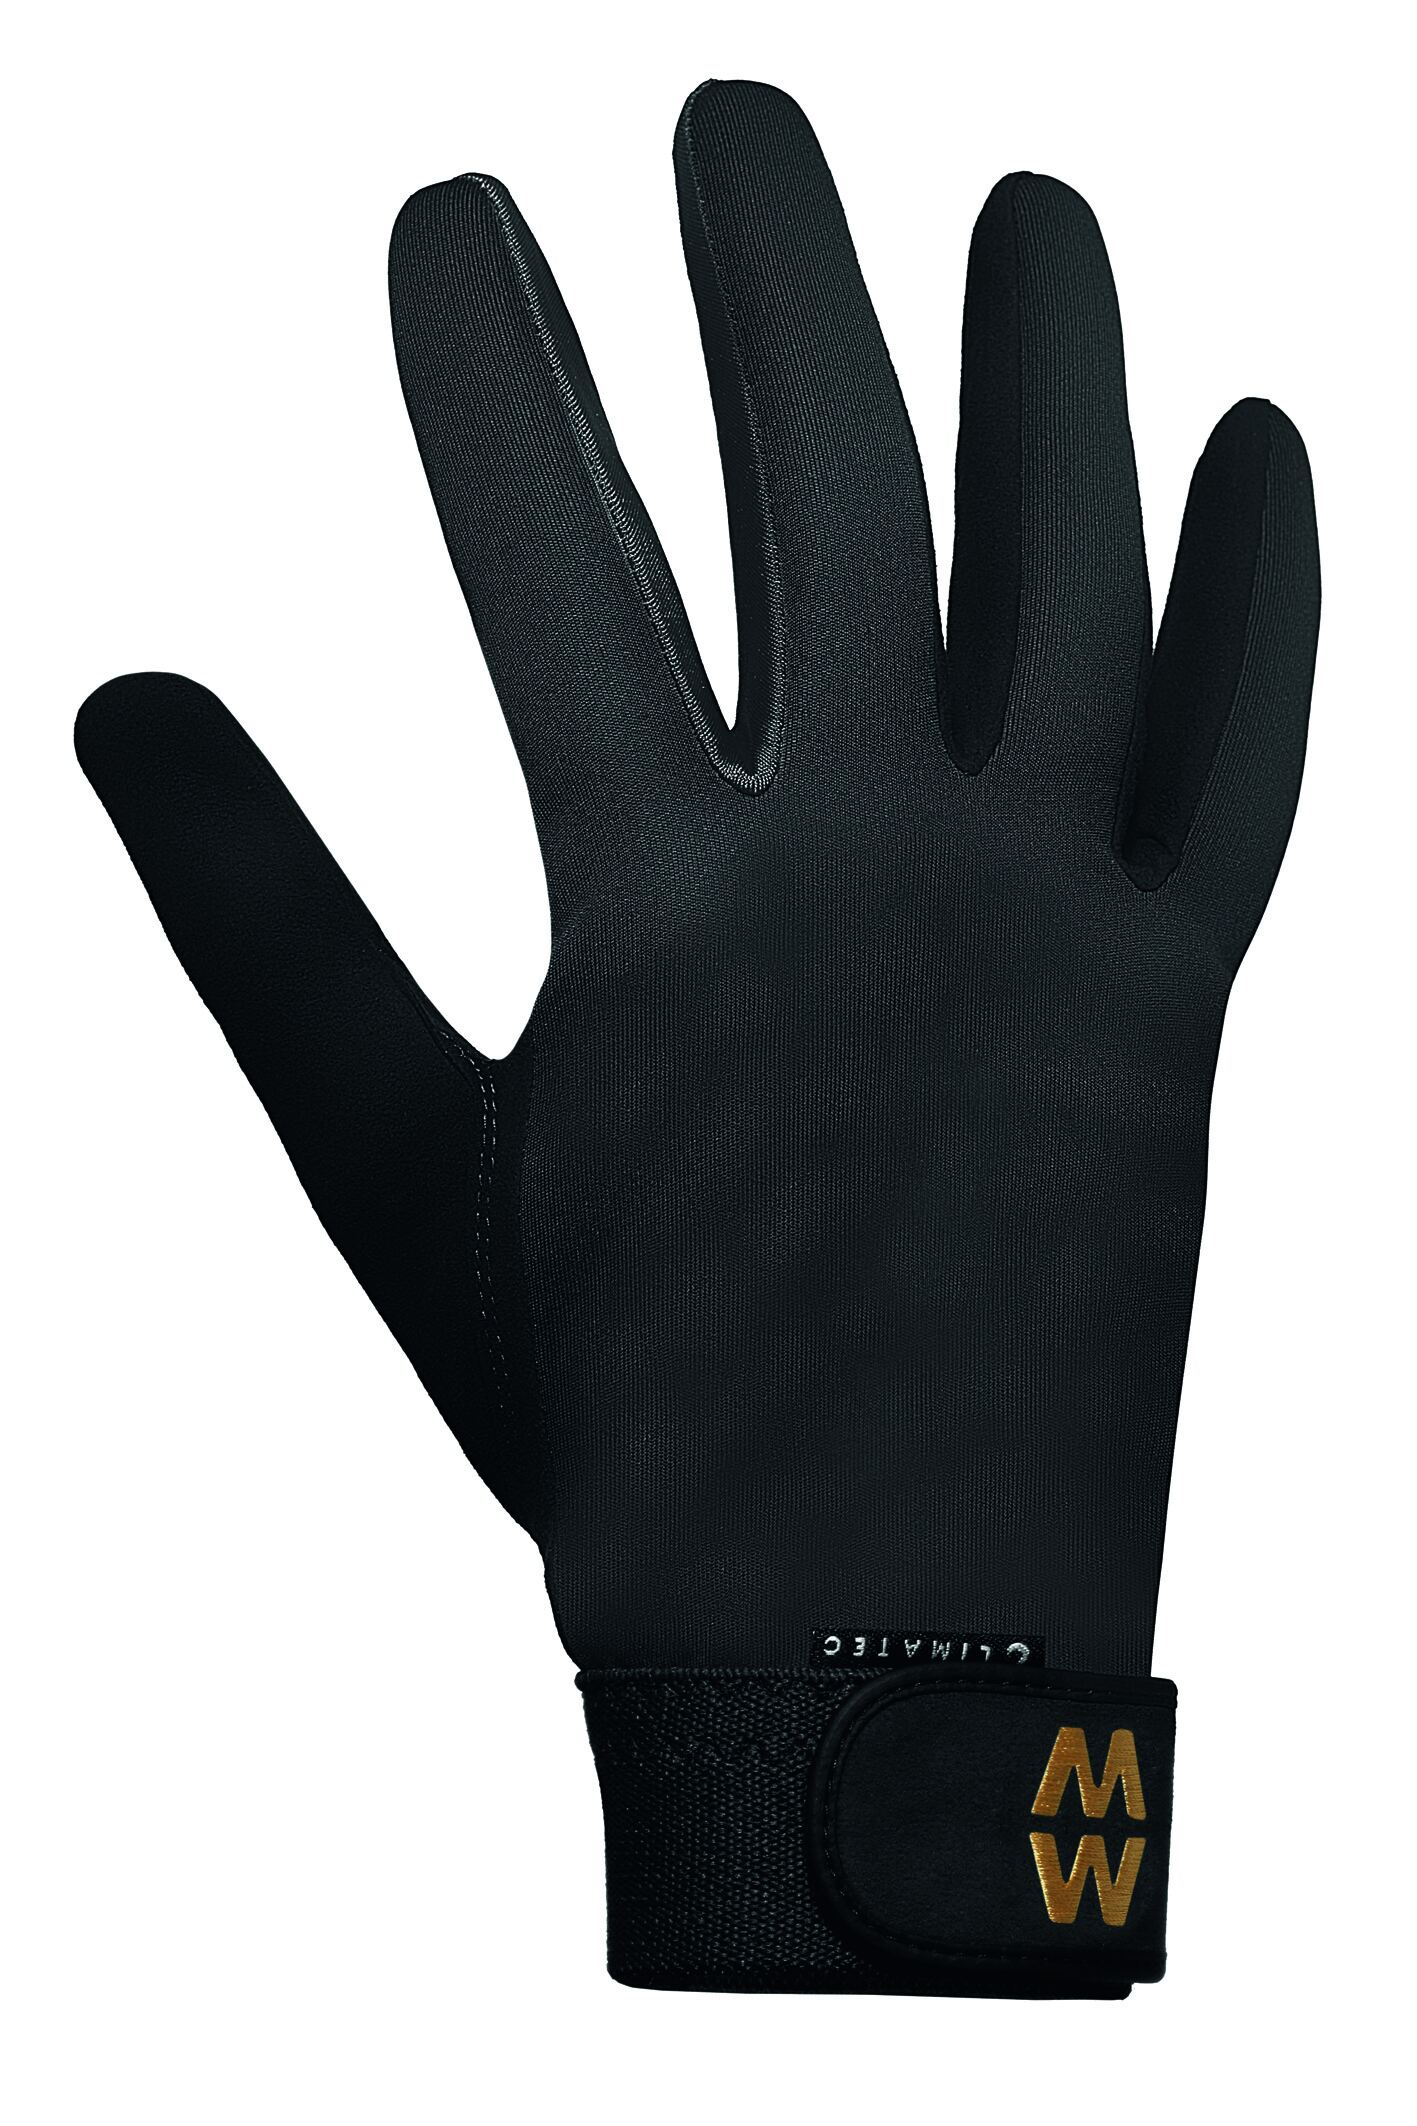 Image of 1 Pair Black MacWet Long Climatec Sports Gloves Unisex 10.5 Unisex - Macwet